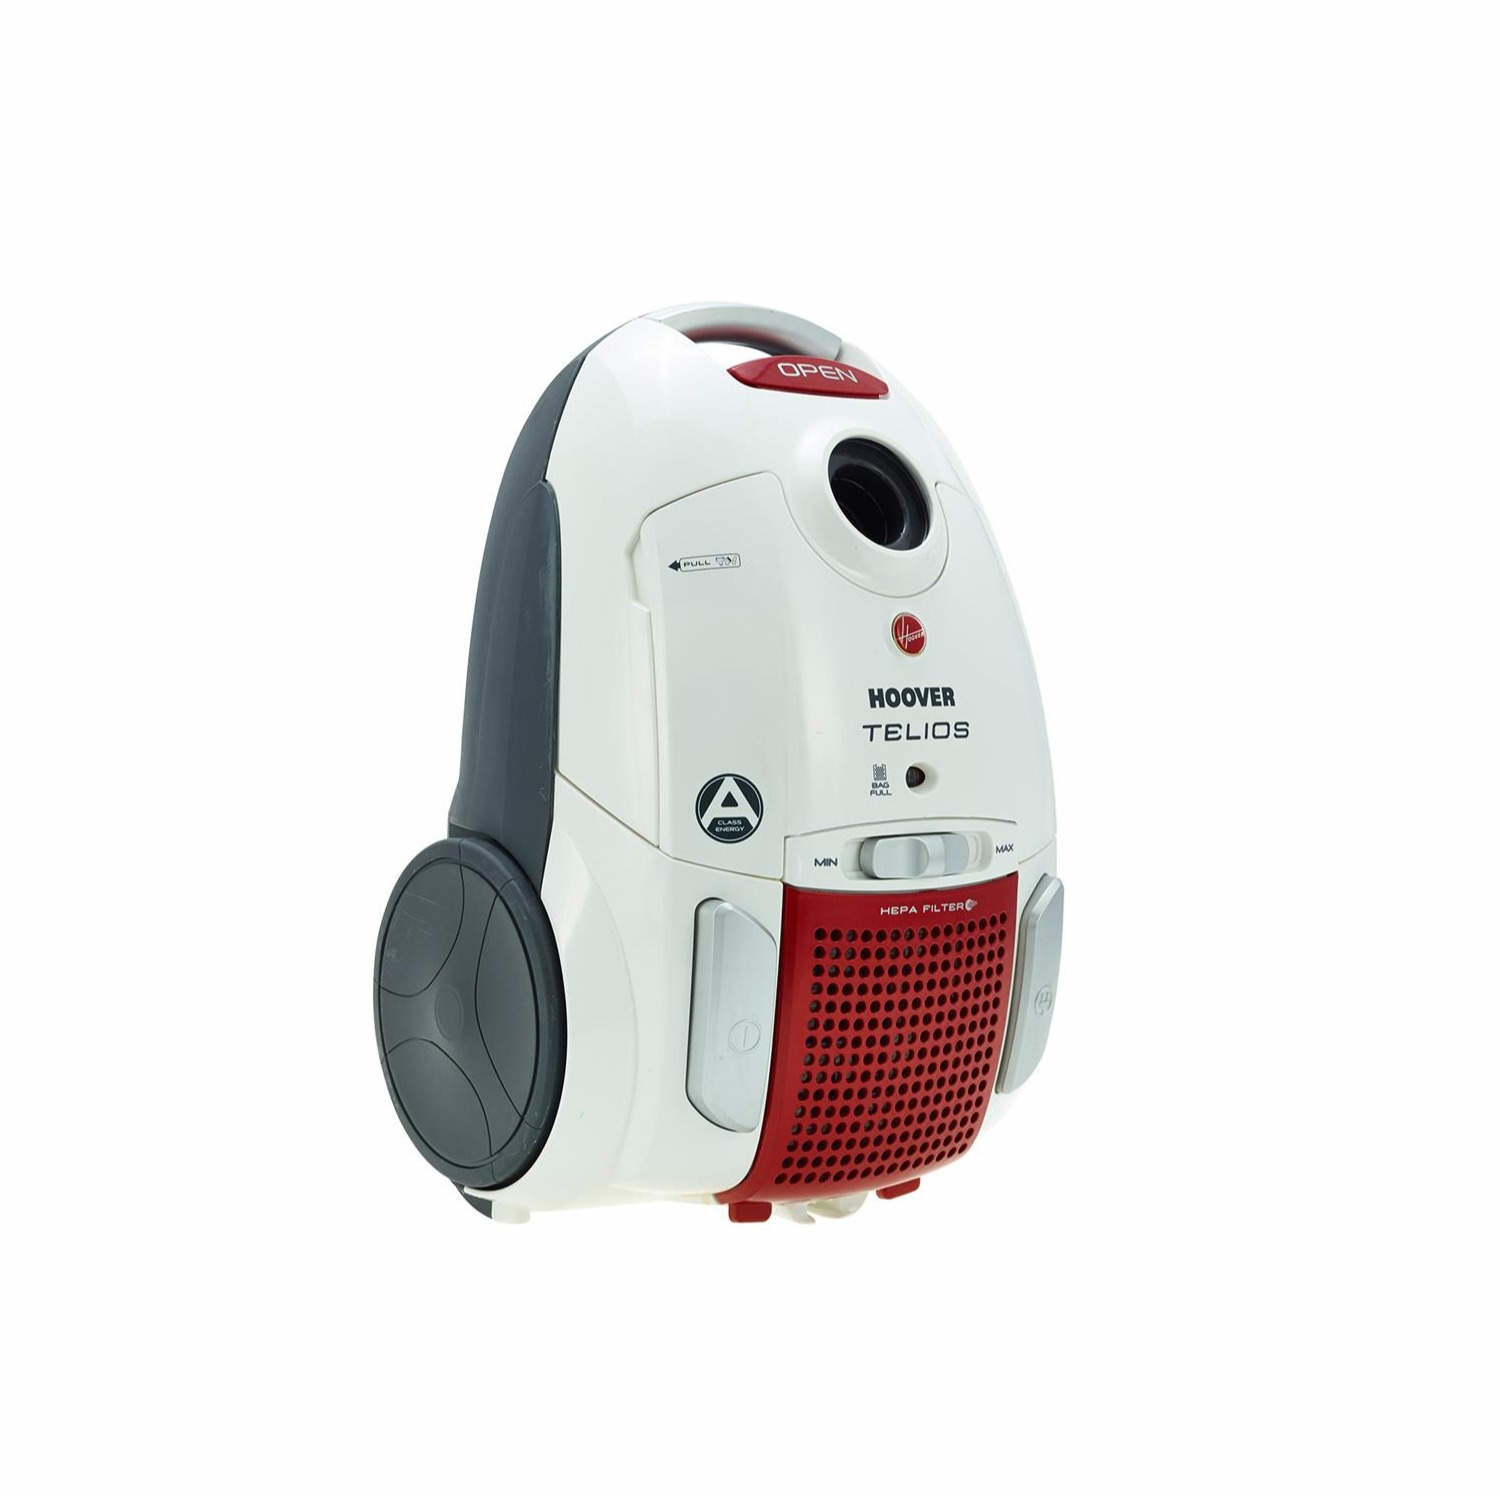 White and Red 700 W Hoover Telios Bagged Cylinder Vacuum Cleaner 3.2 L